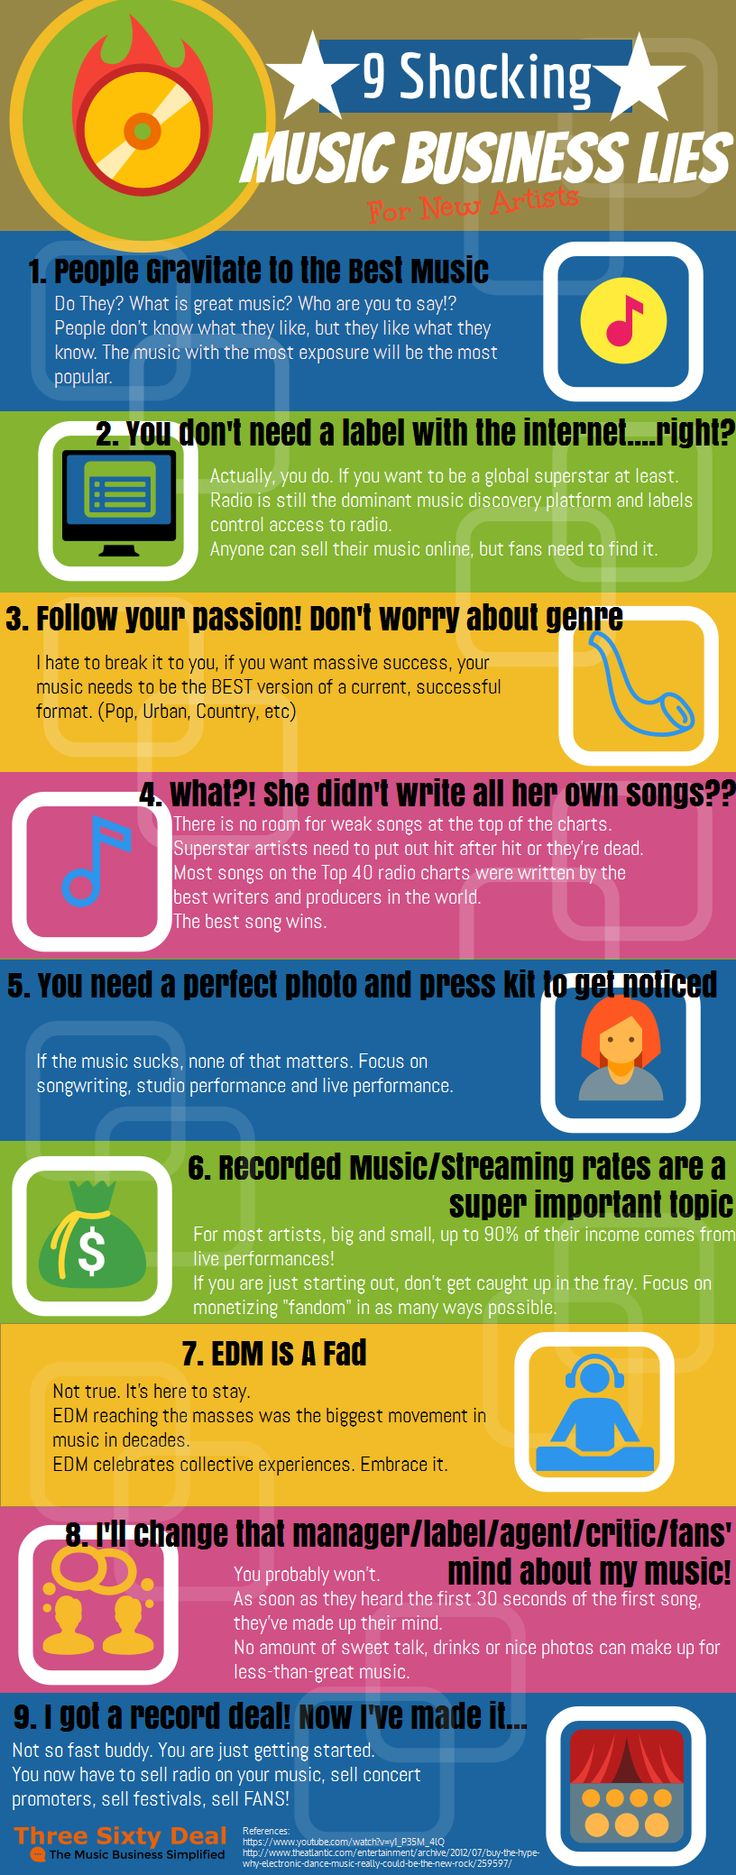 [Infographic] 9 Shocking Music Business Lies